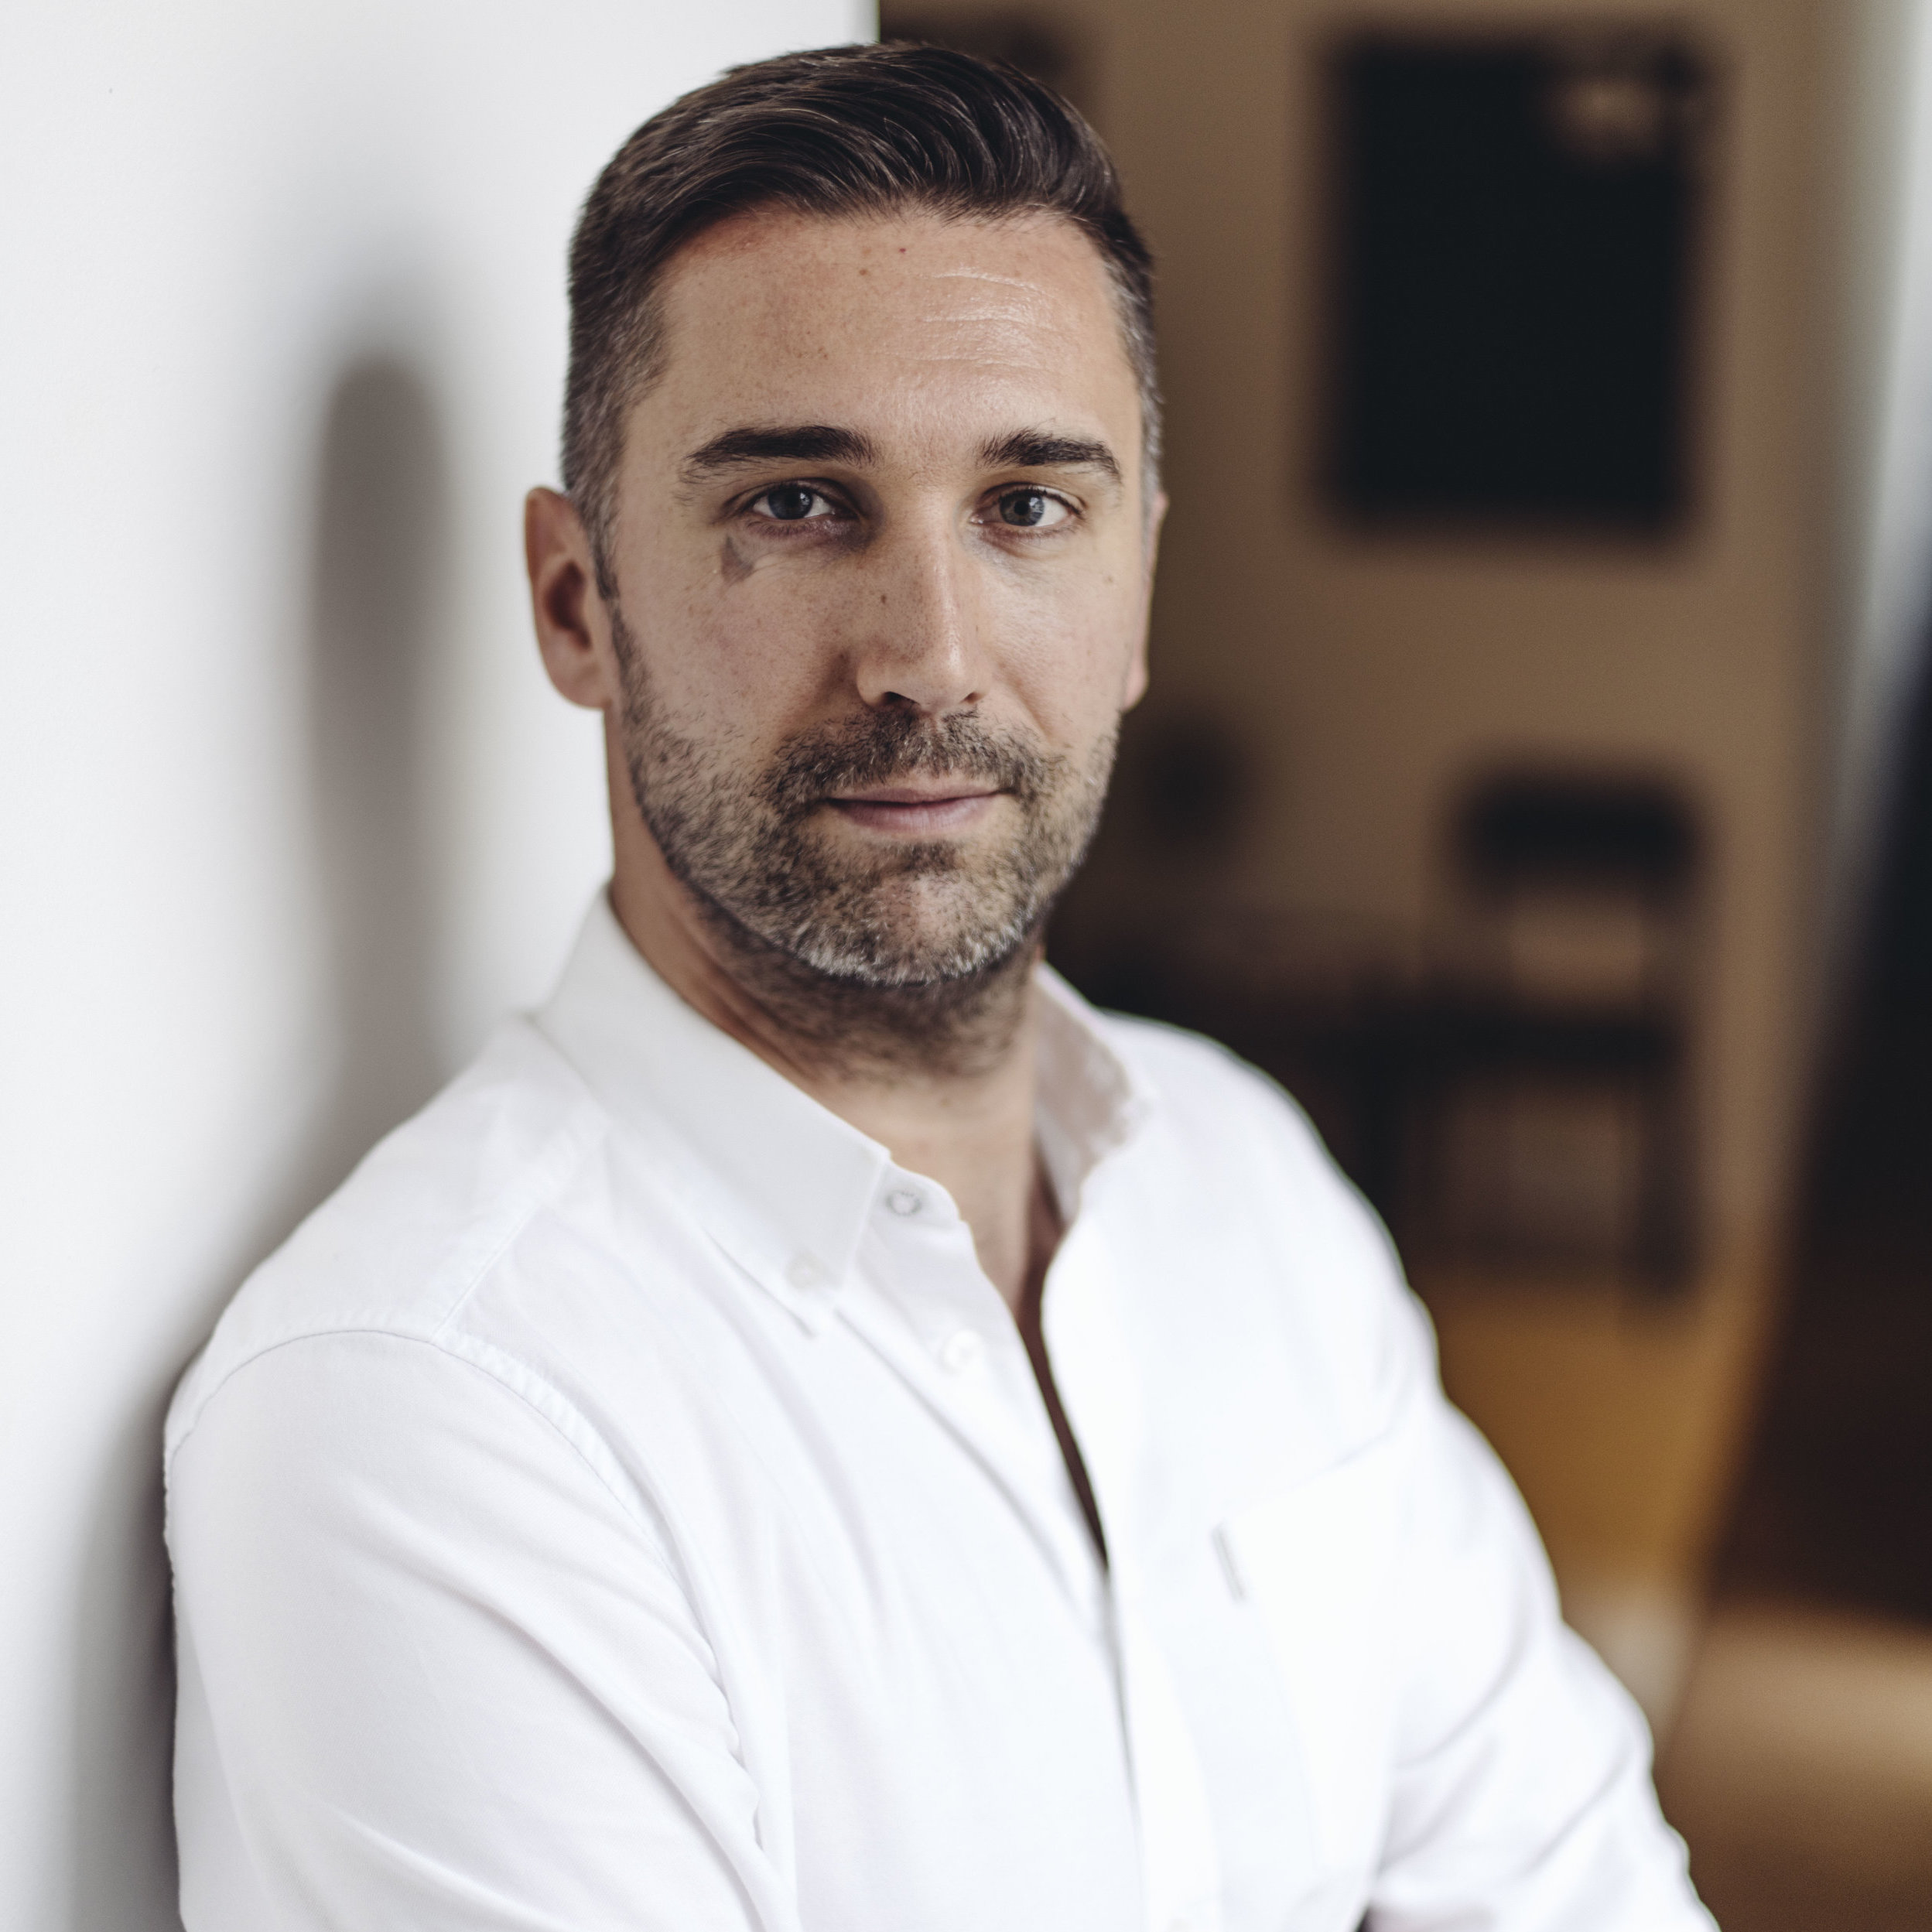 Aaron Down - Founder of Clubhouse Property Guardians - I've been part of the space for the past year and it has been amazing. It has genuinely been a life changer. I wouldn't have made the connection with so many important people that have helped me launch Clubhouse Property Guardians. Everyone is so supportive.